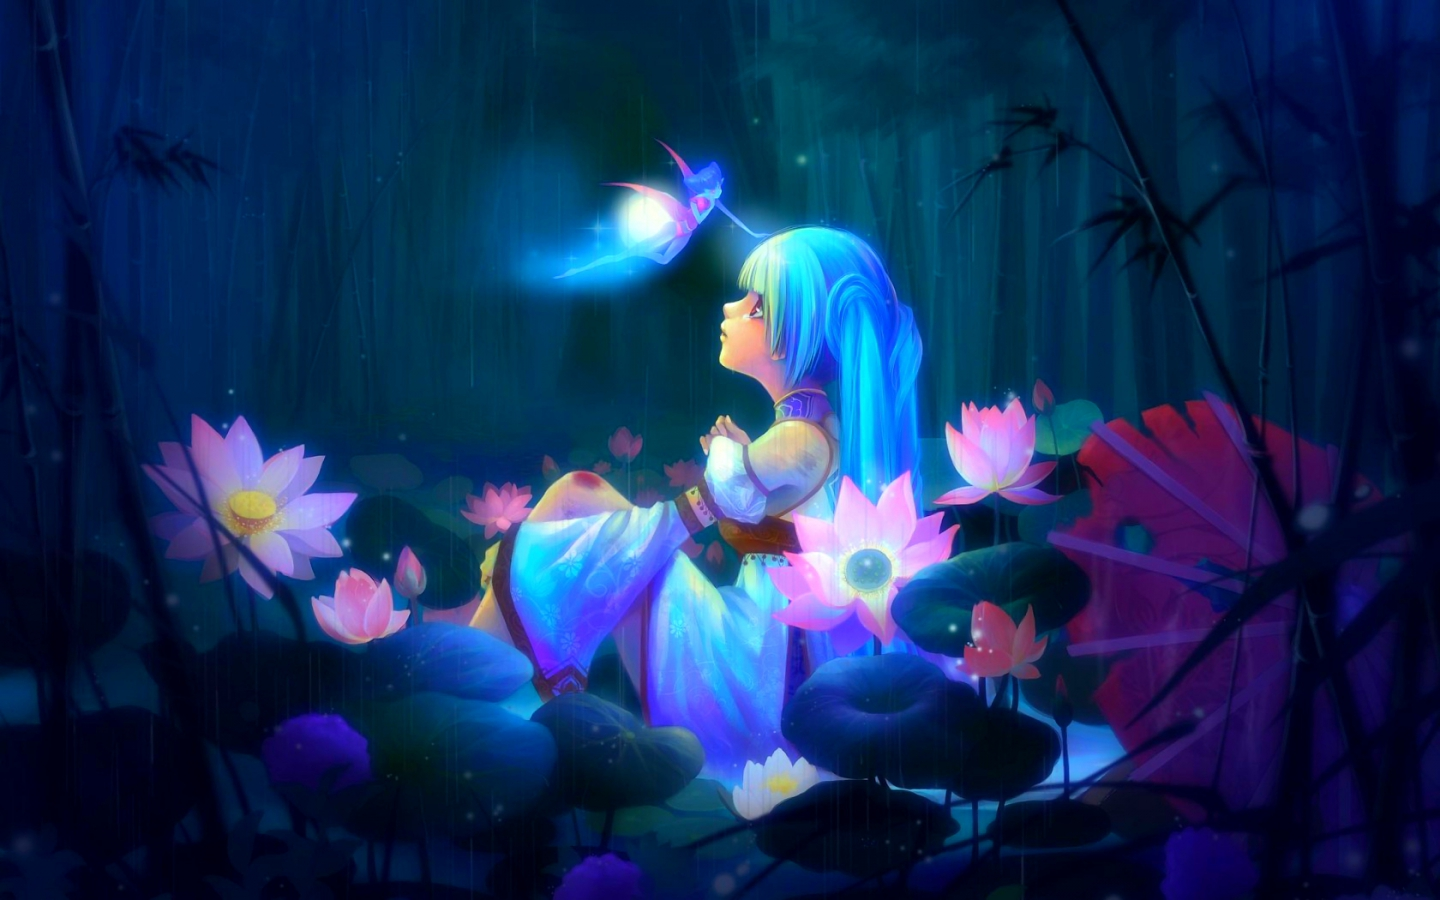 Enchanted Bliss Images Fantasy Miku Hd Wallpaper And Background